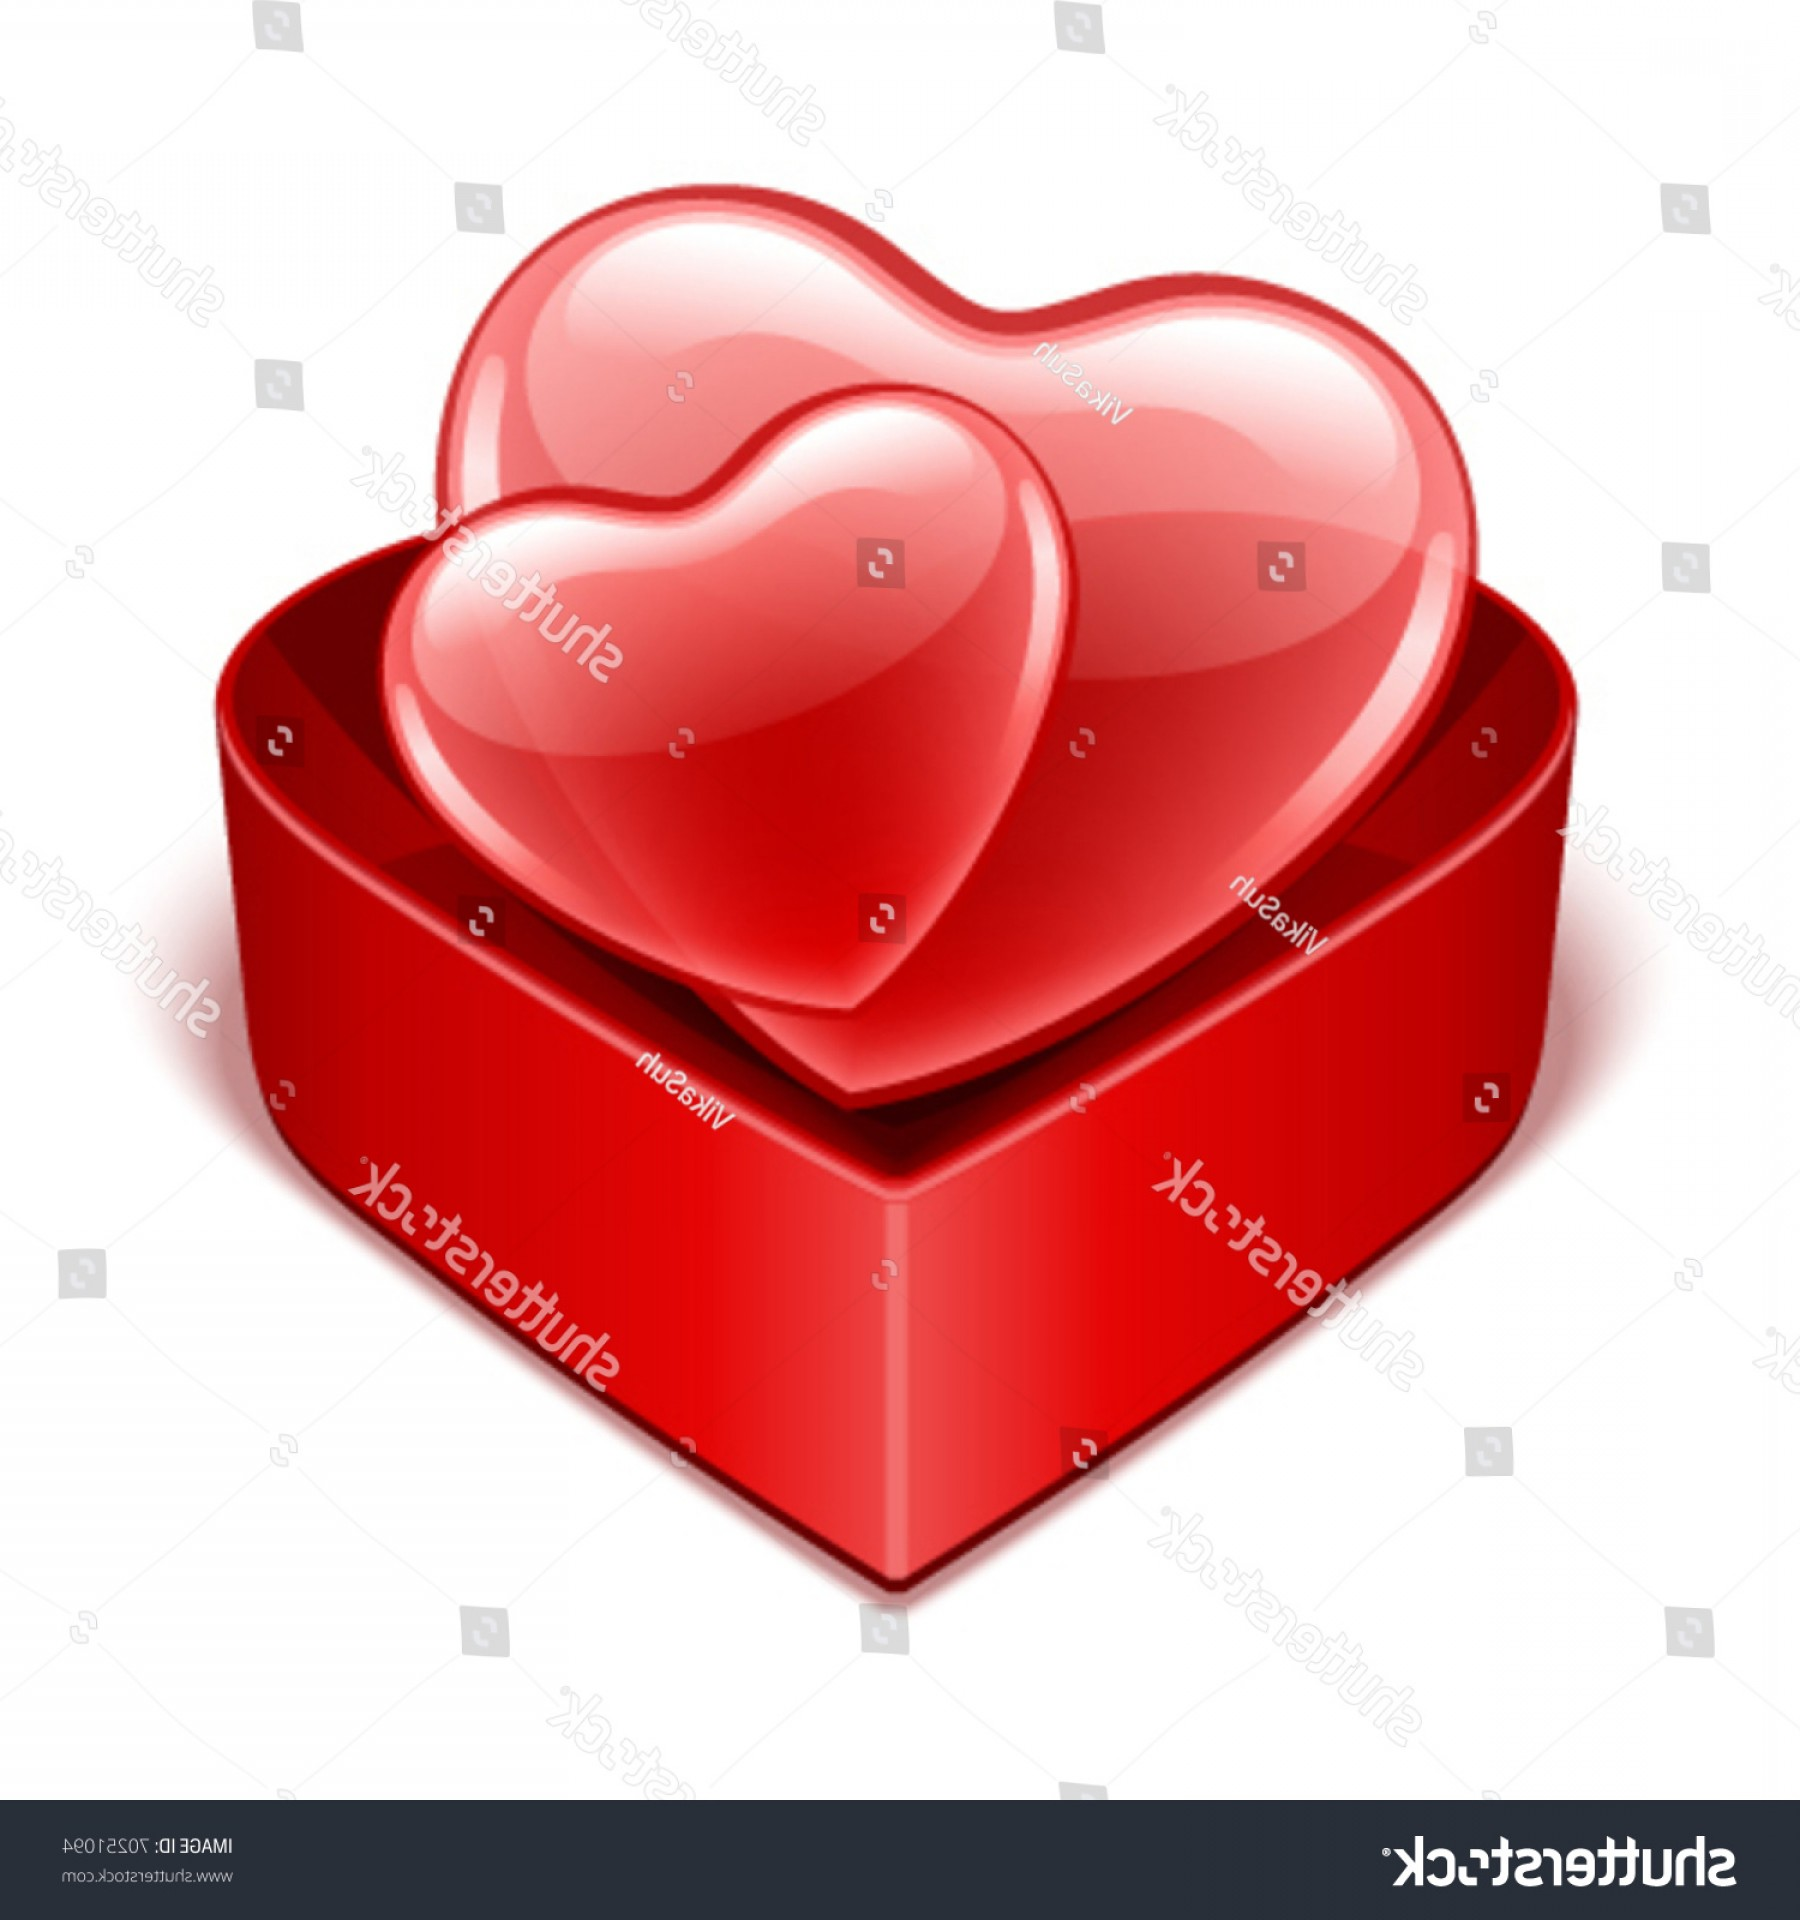 1800x1920 Stock Vector Open Heart Gift Present With Two Hearts Vector